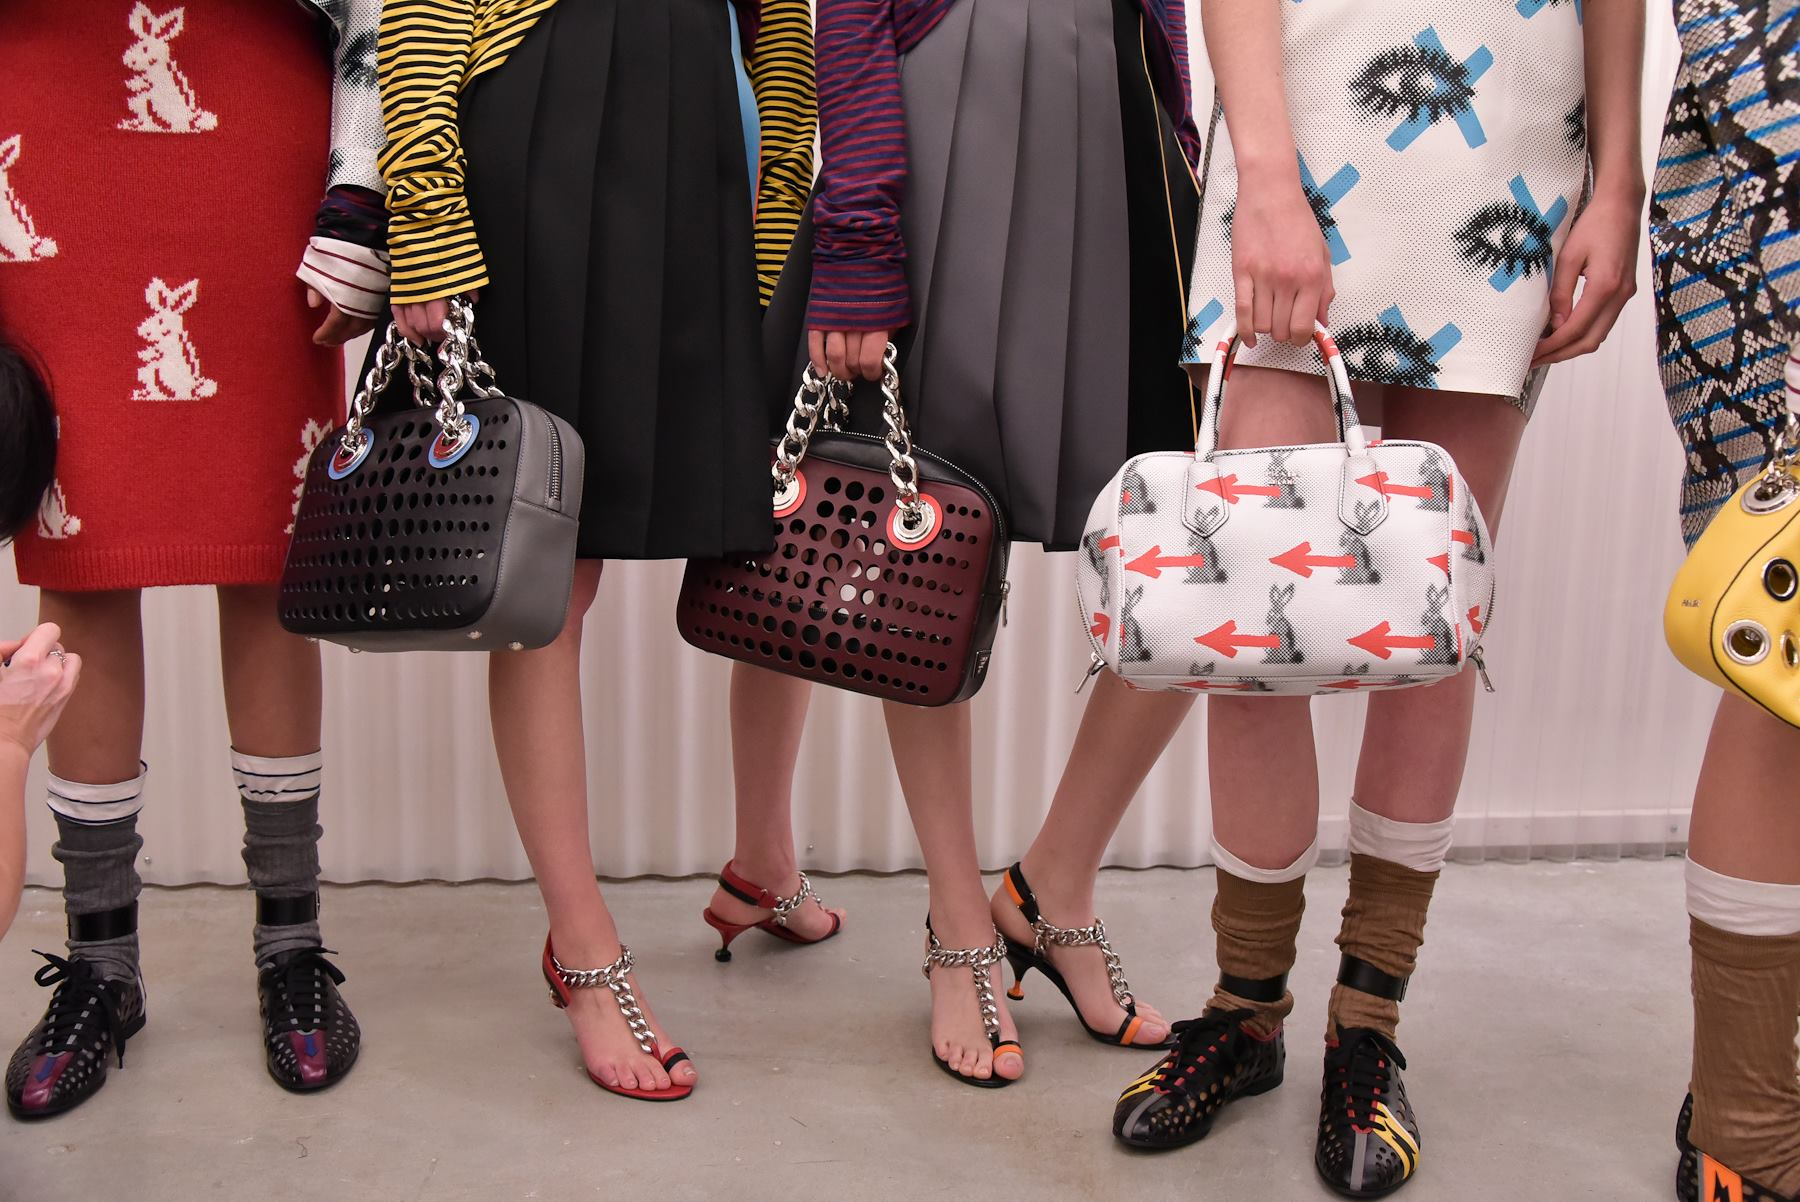 The Saks Fifth Avenue Pre-Sale Kicks Off With Discounted Bags